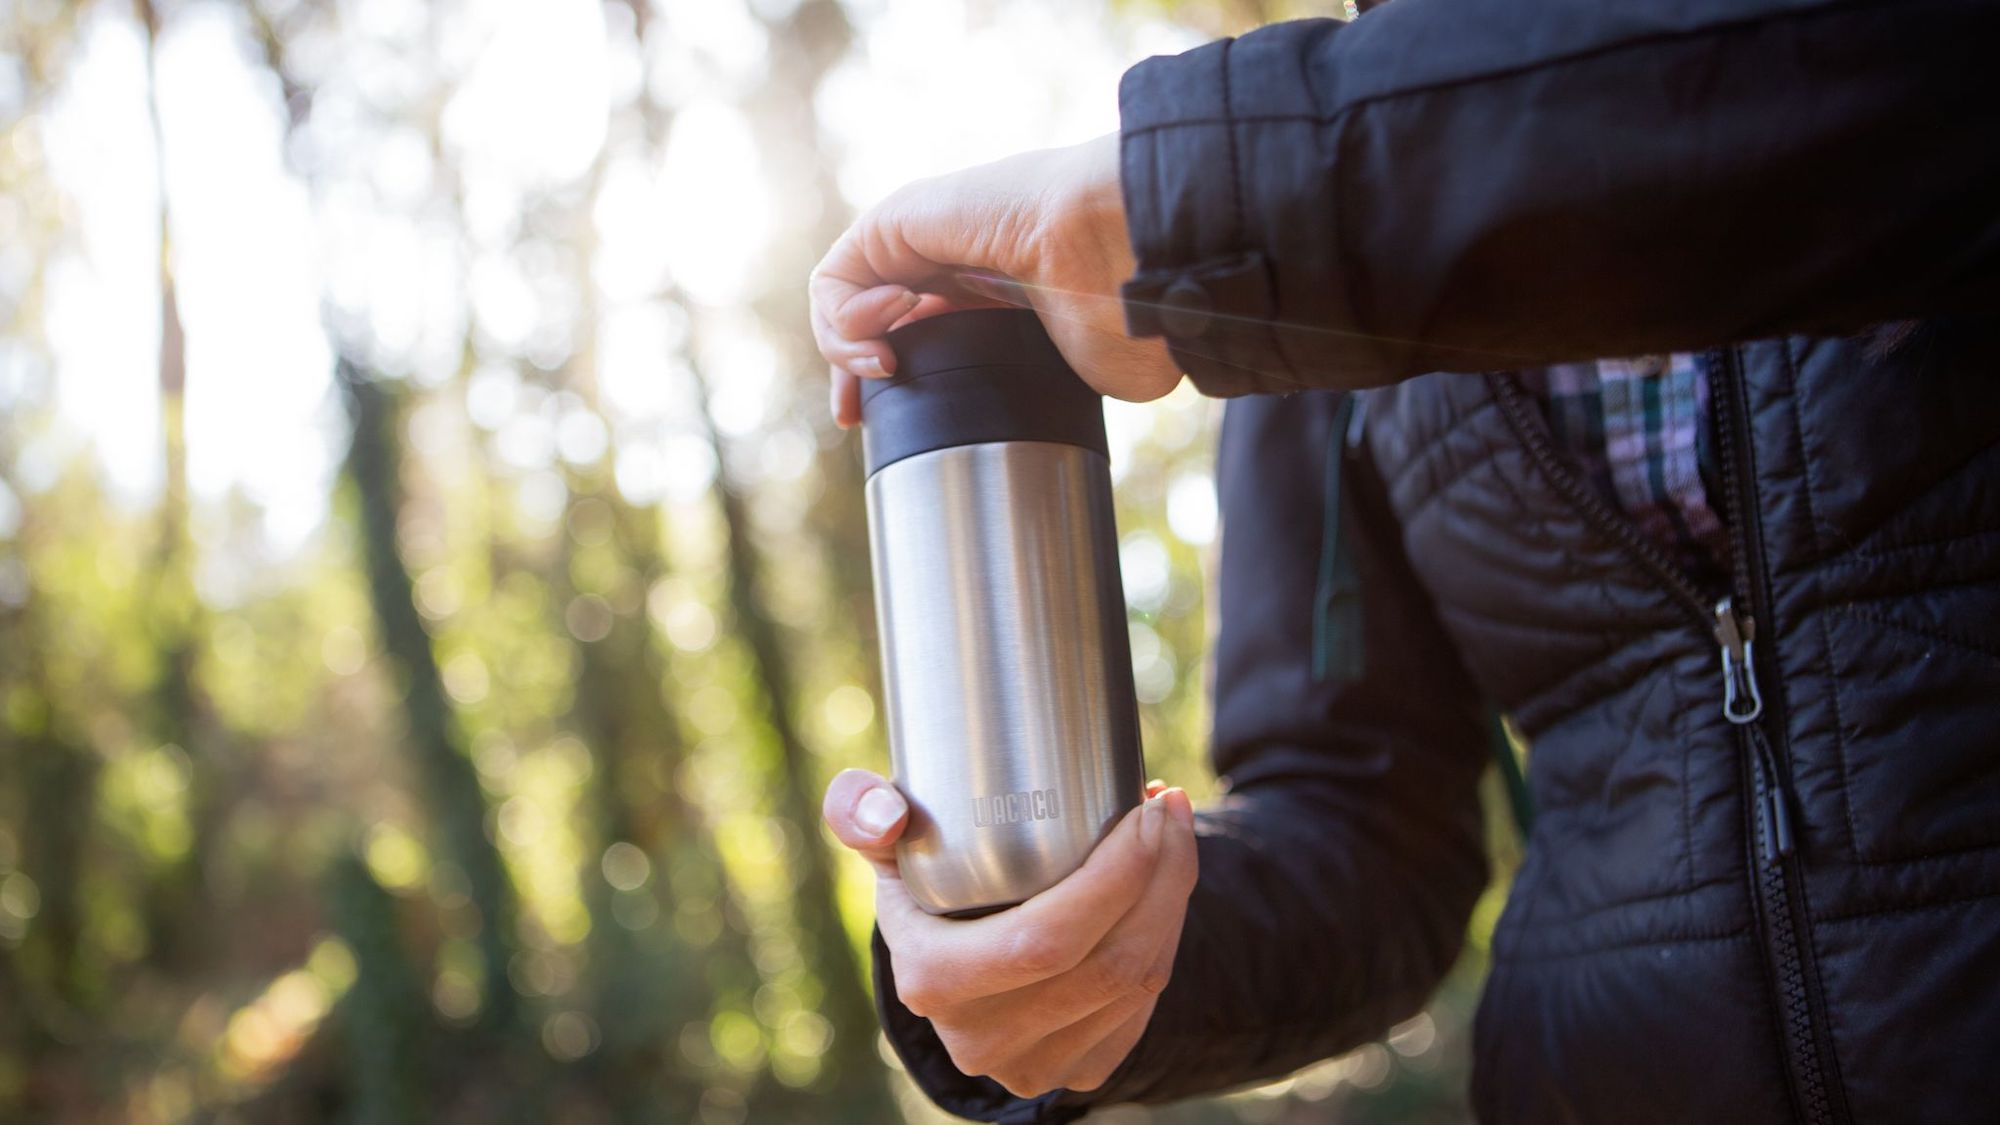 Wacaco Nanovessel Vacuum-Insulated Flask is a tumbler, tea infuser, and water bottle in one